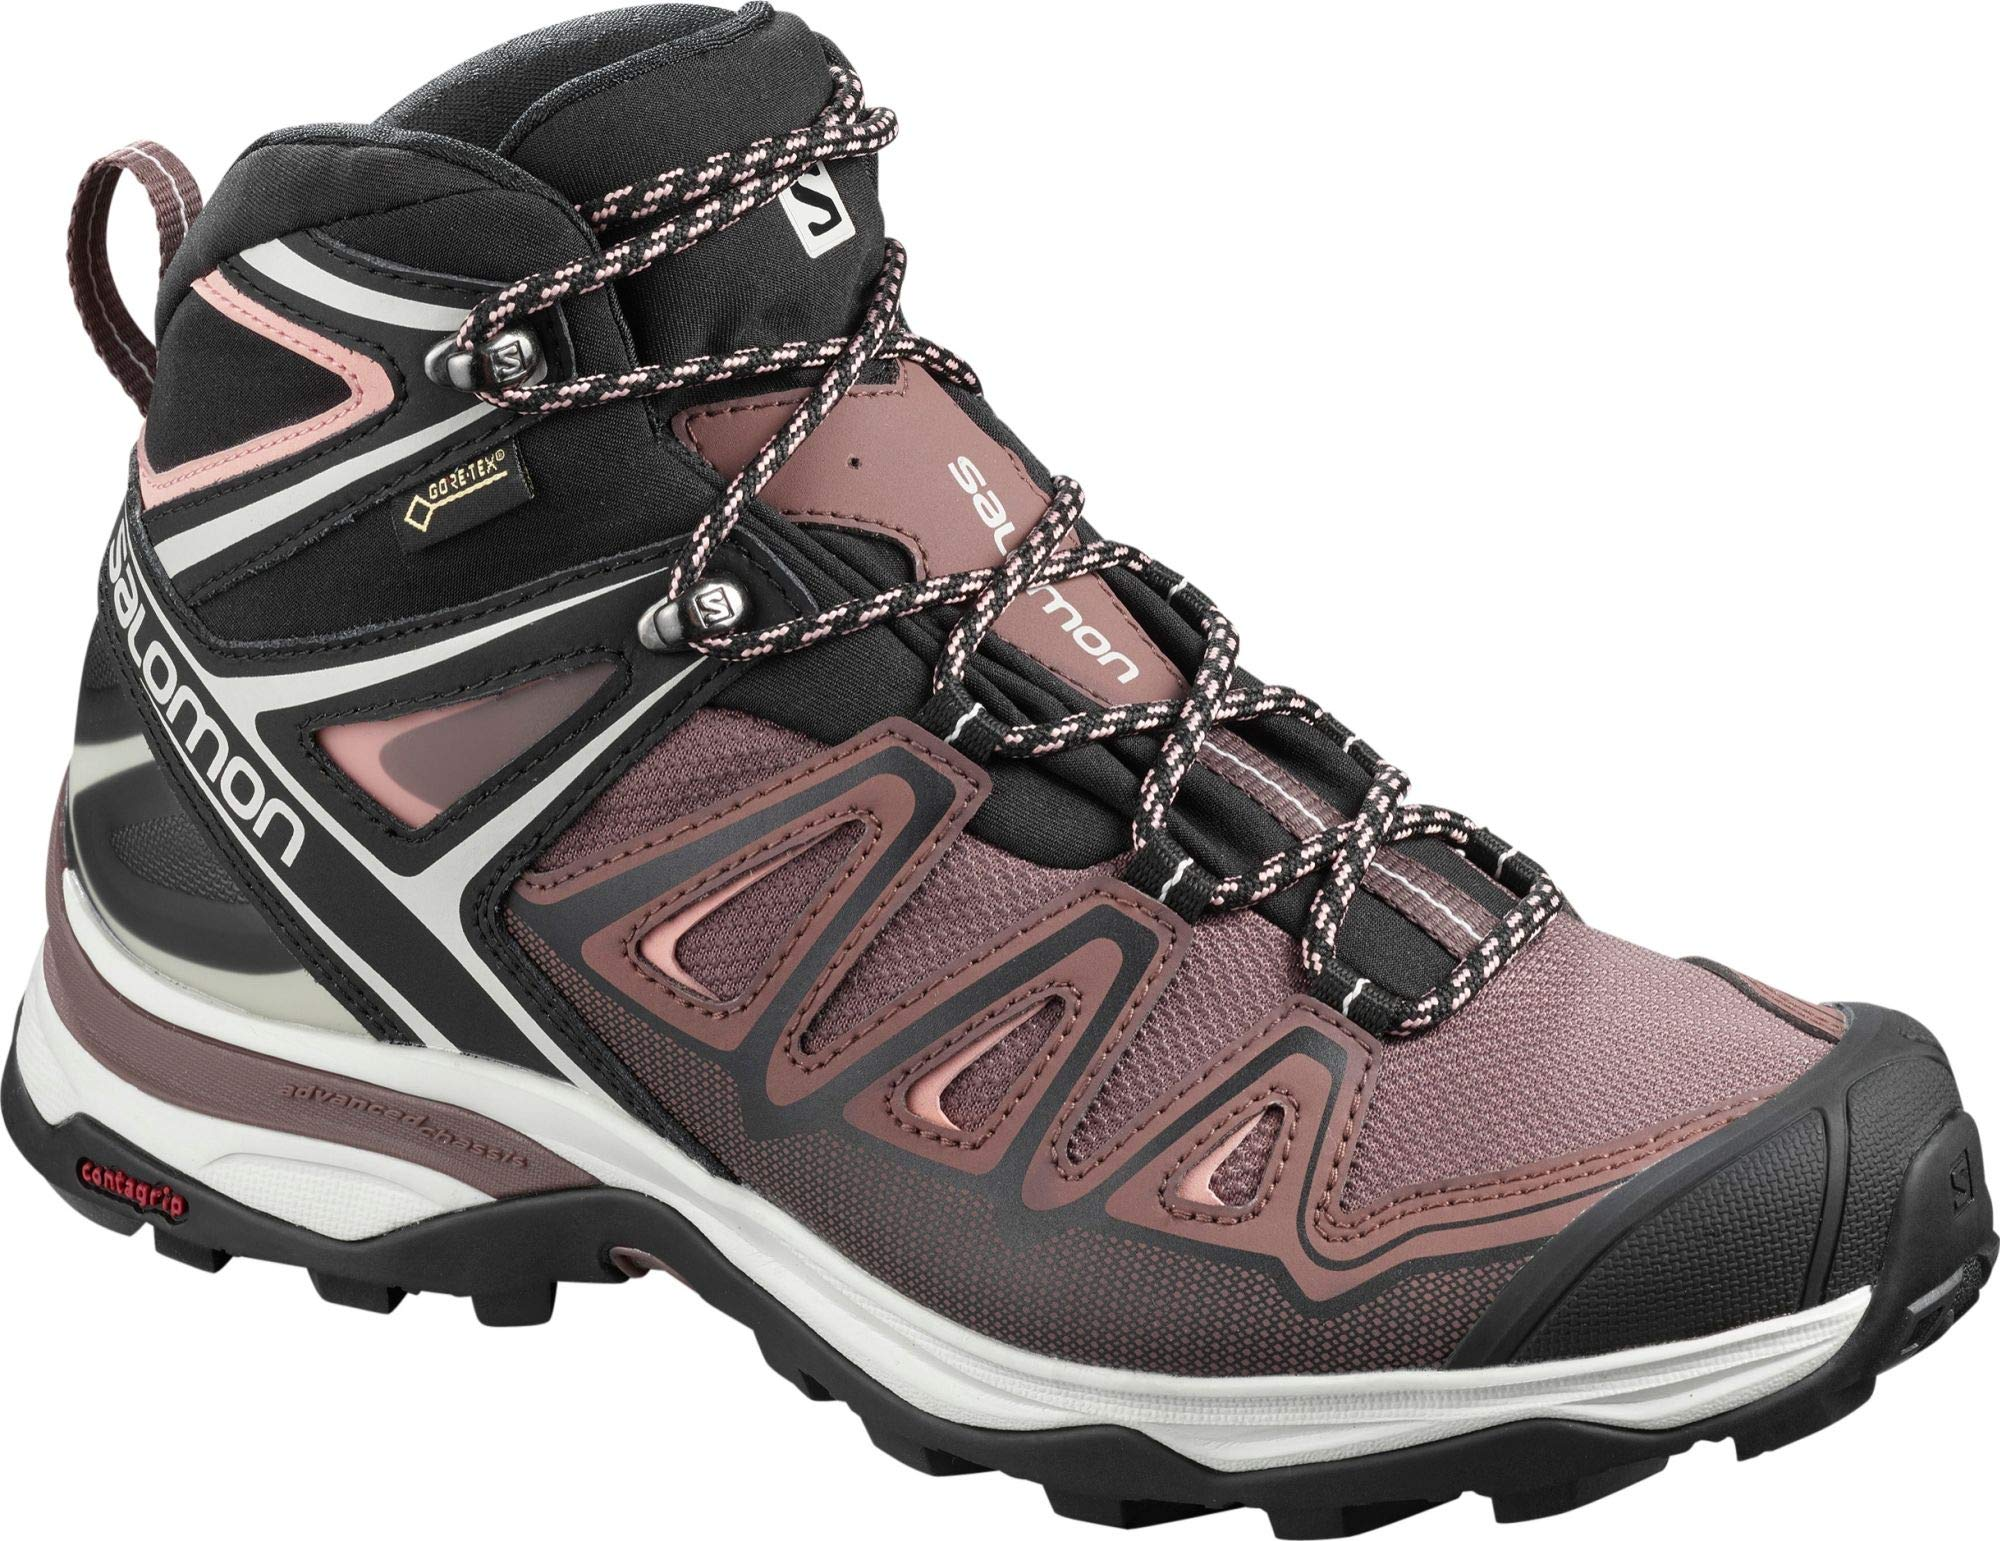 Salomon Women's X Ultra 3 Mid GTX Hiking Boots, Peppercorn/Black/Coral Almond, 6.5 by SALOMON